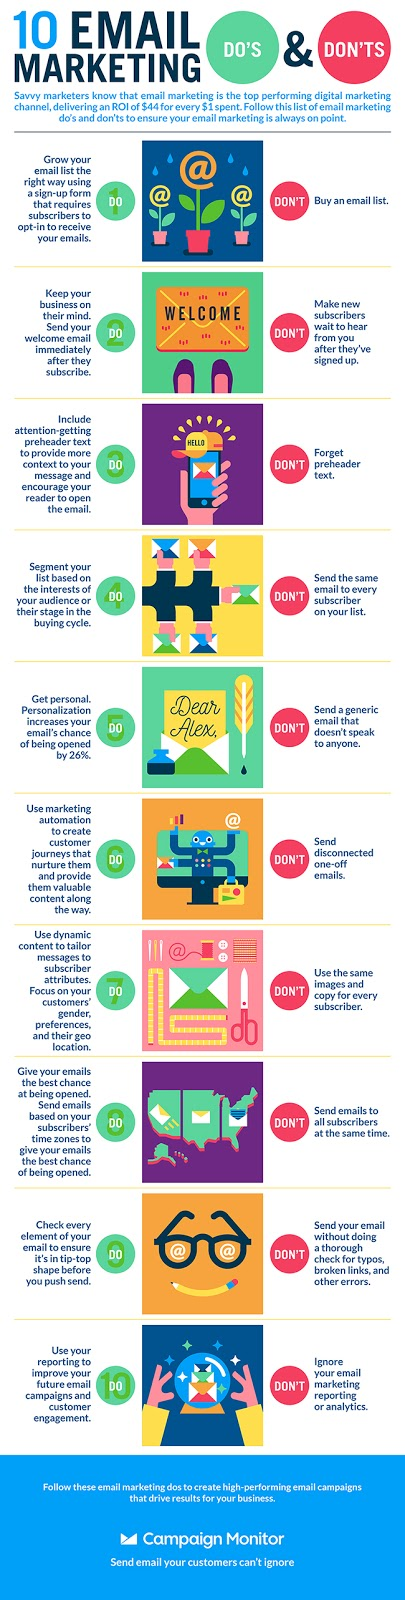 10 Email Marketing Do's and Don'ts Infographic Campaign Monitor